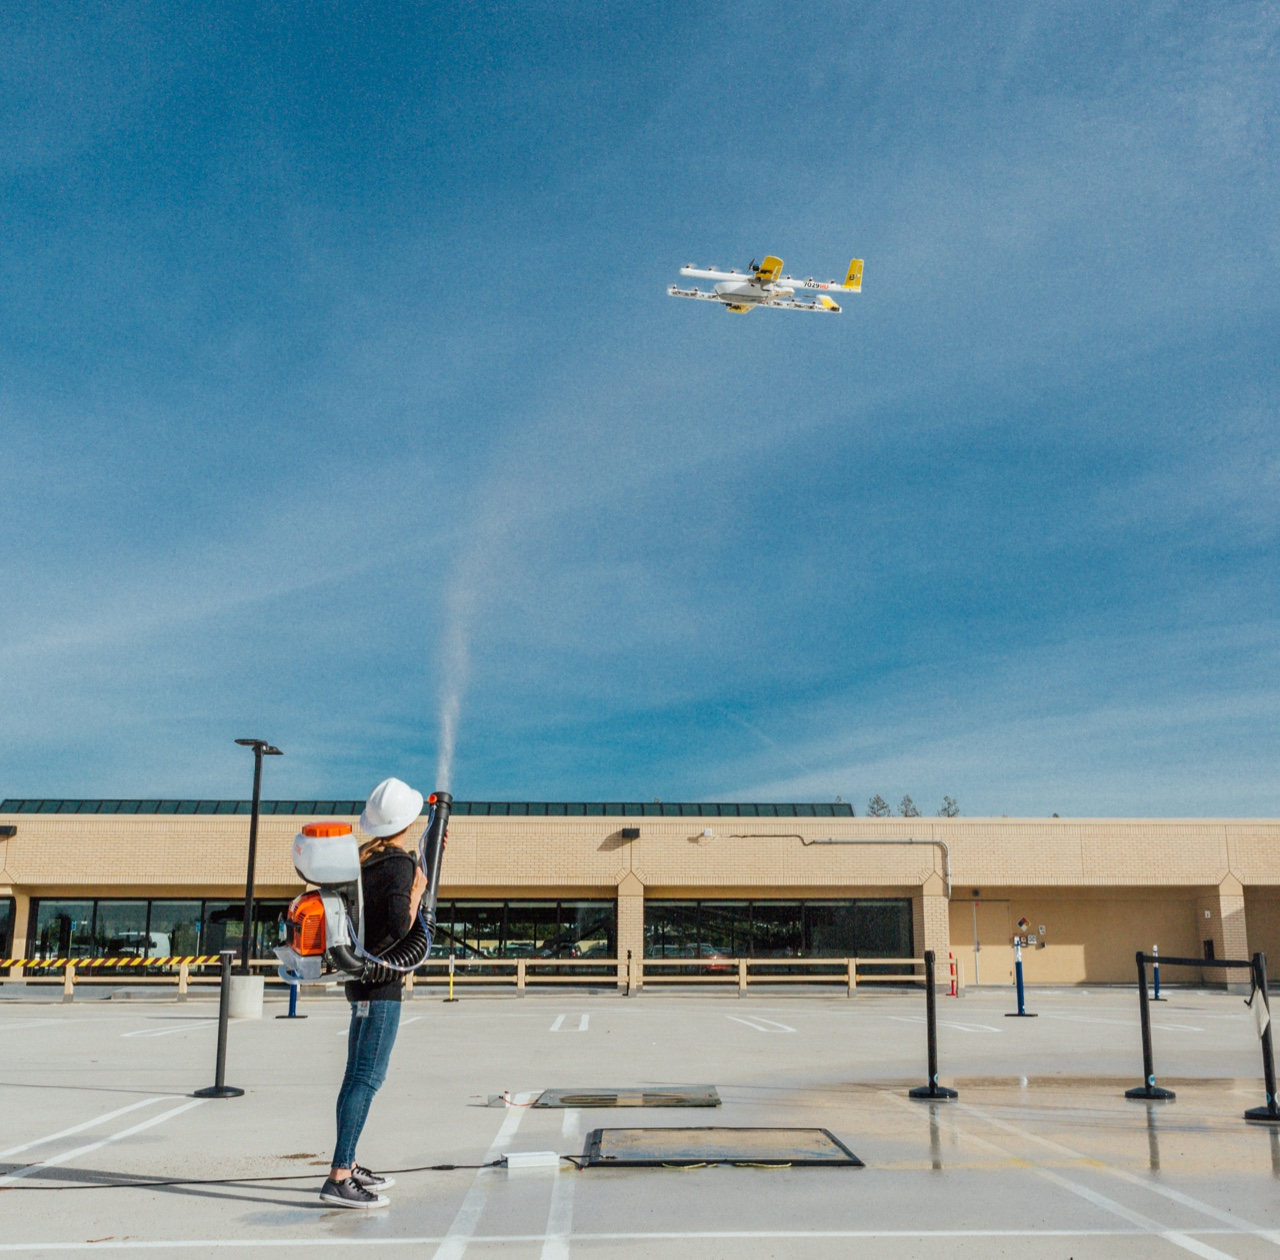 A person stands in a parking lot with a machine strapped to their back. The machine is attached to a hose which they're directing at a drone in a large blue sky.